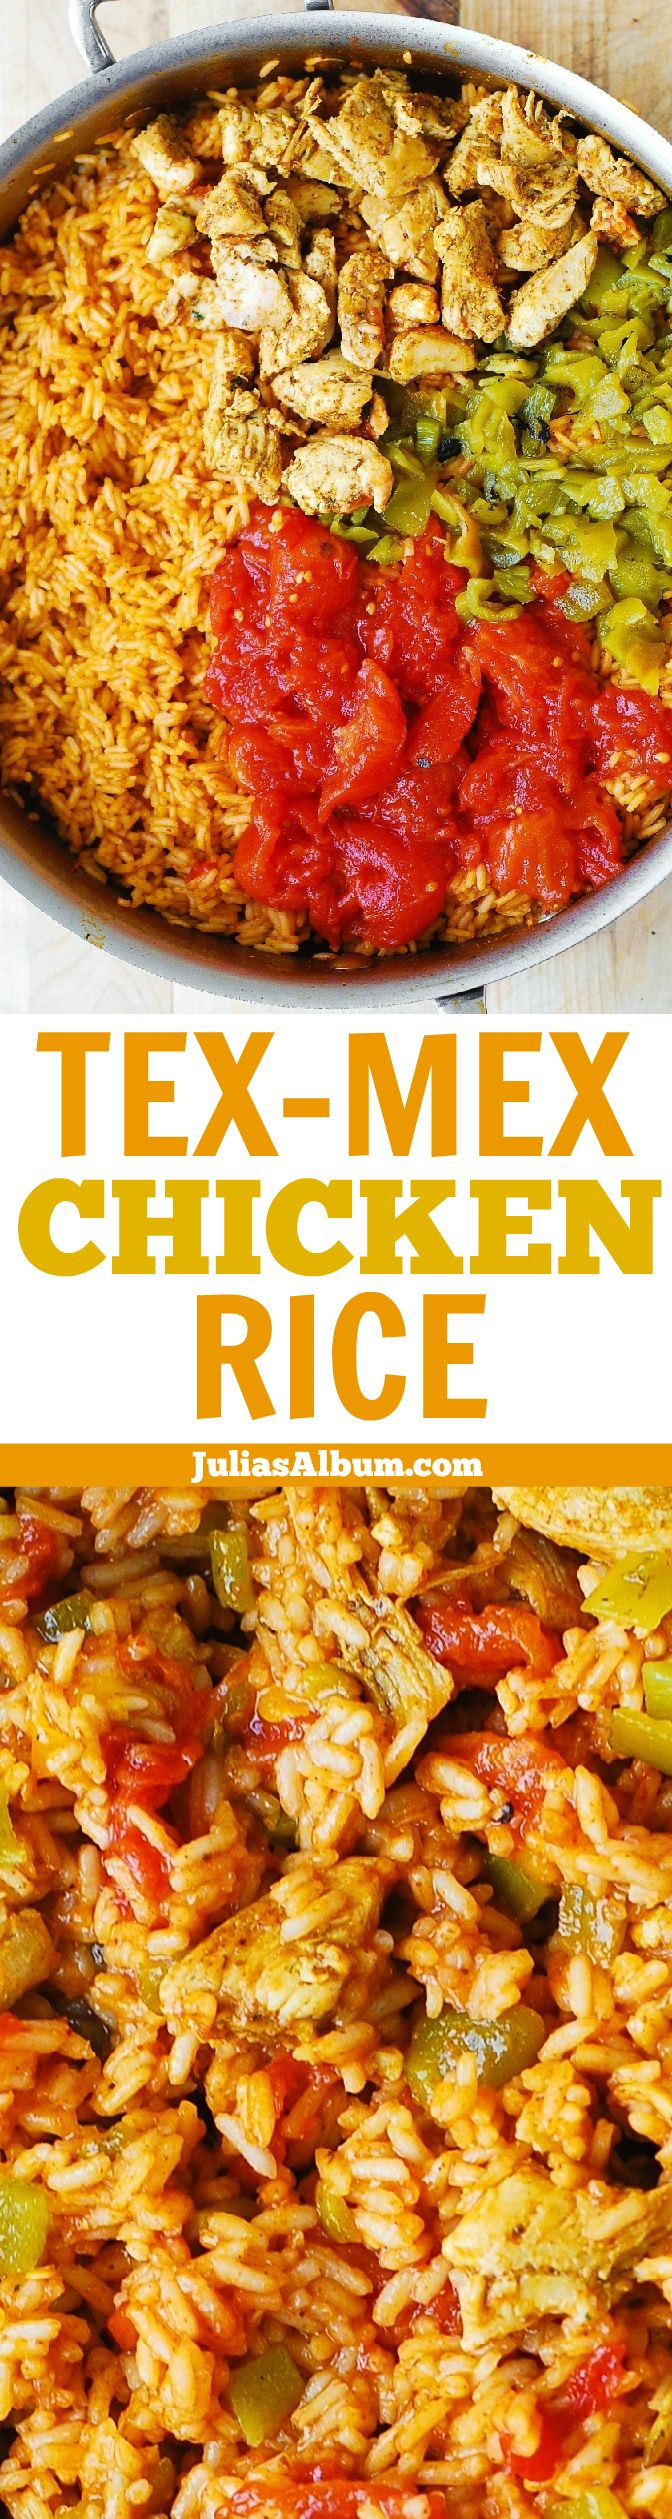 Tex-Mex Chicken and Rice Skillet - With Southwestern flavors you love: chili powder, cumin, diced green chiles.